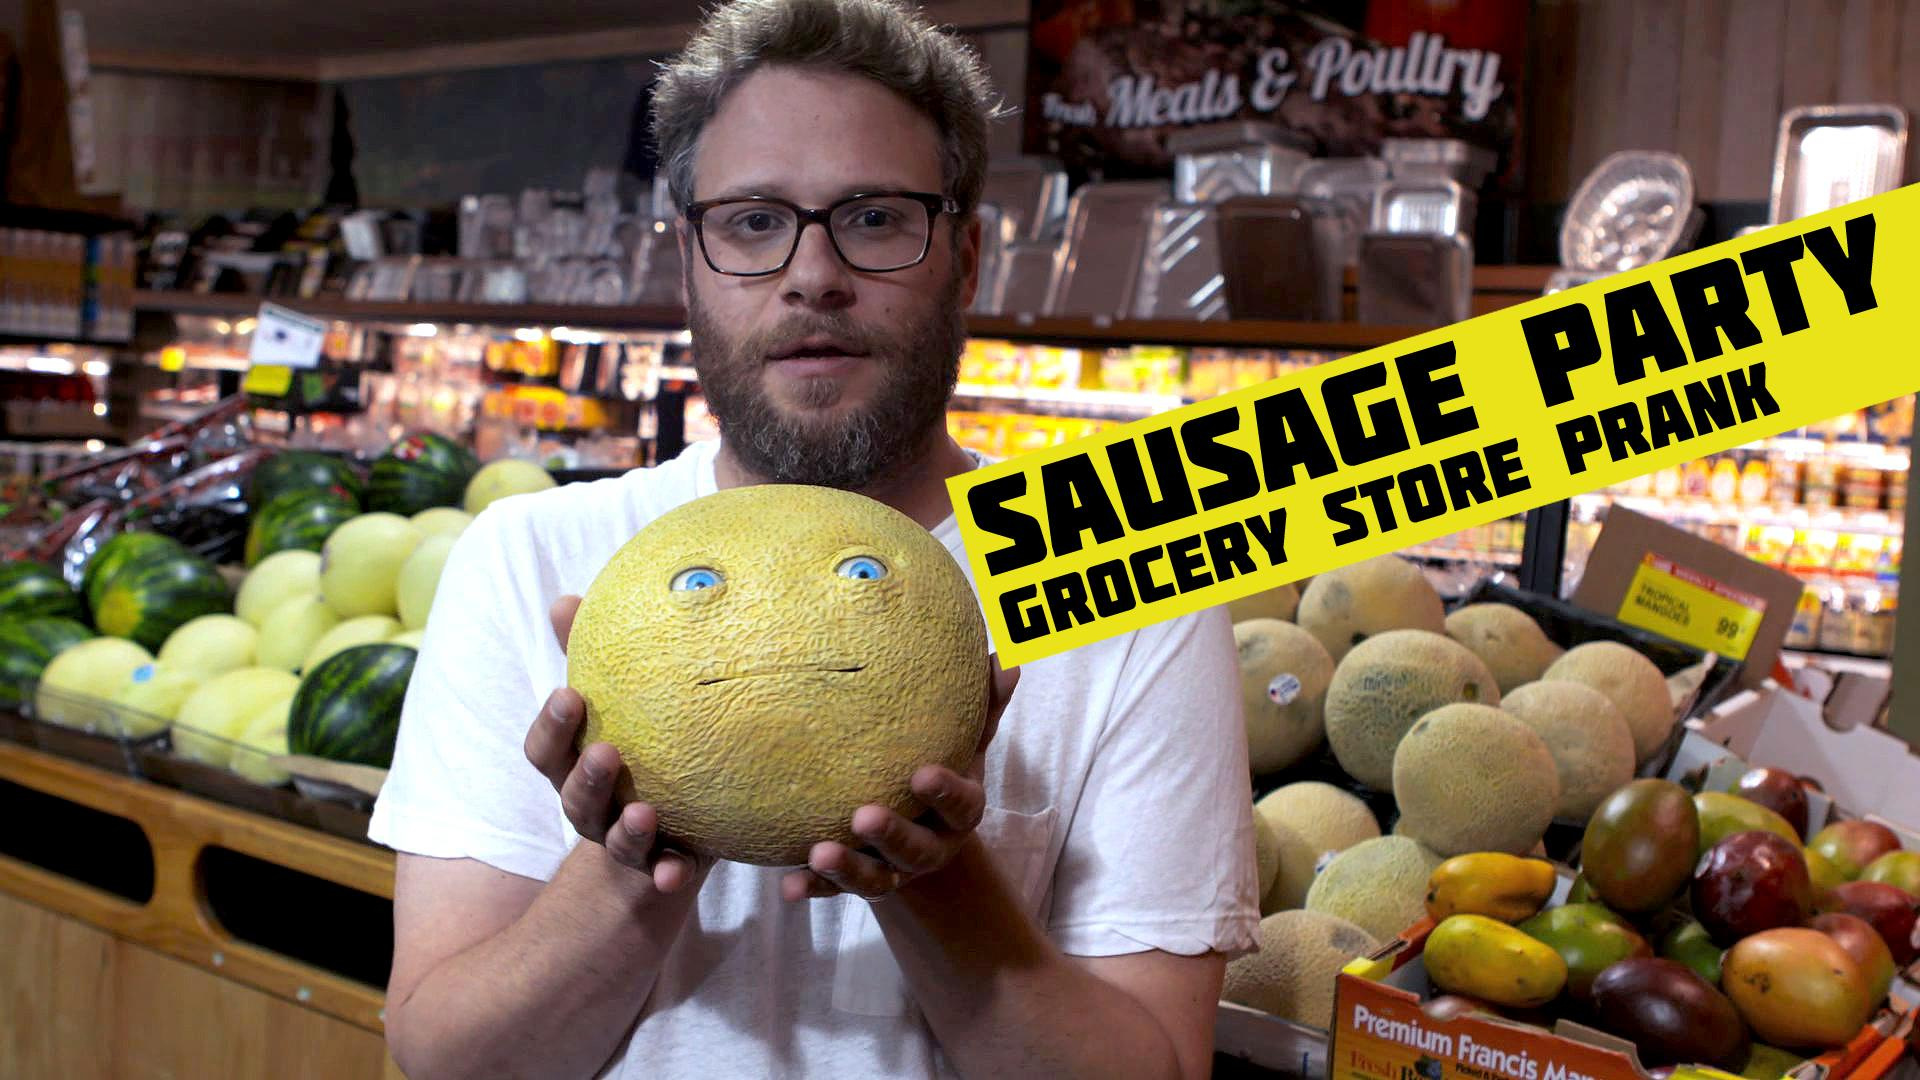 Thumbnail for Sausage Party - Grocery Store Prank